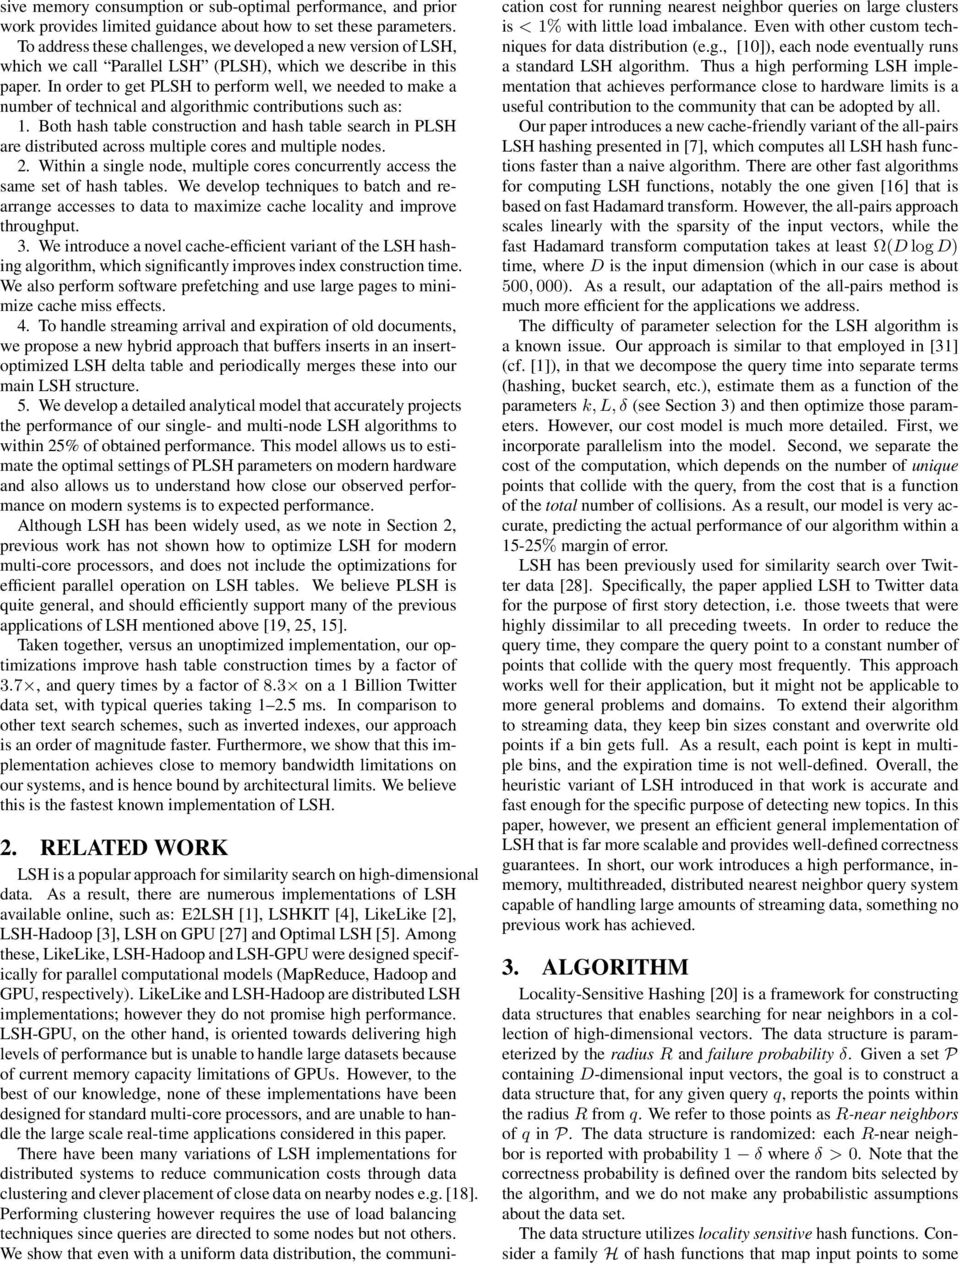 In order to get PLSH to perform well, we needed to make a number of technical and algorithmic contributions such as: 1.